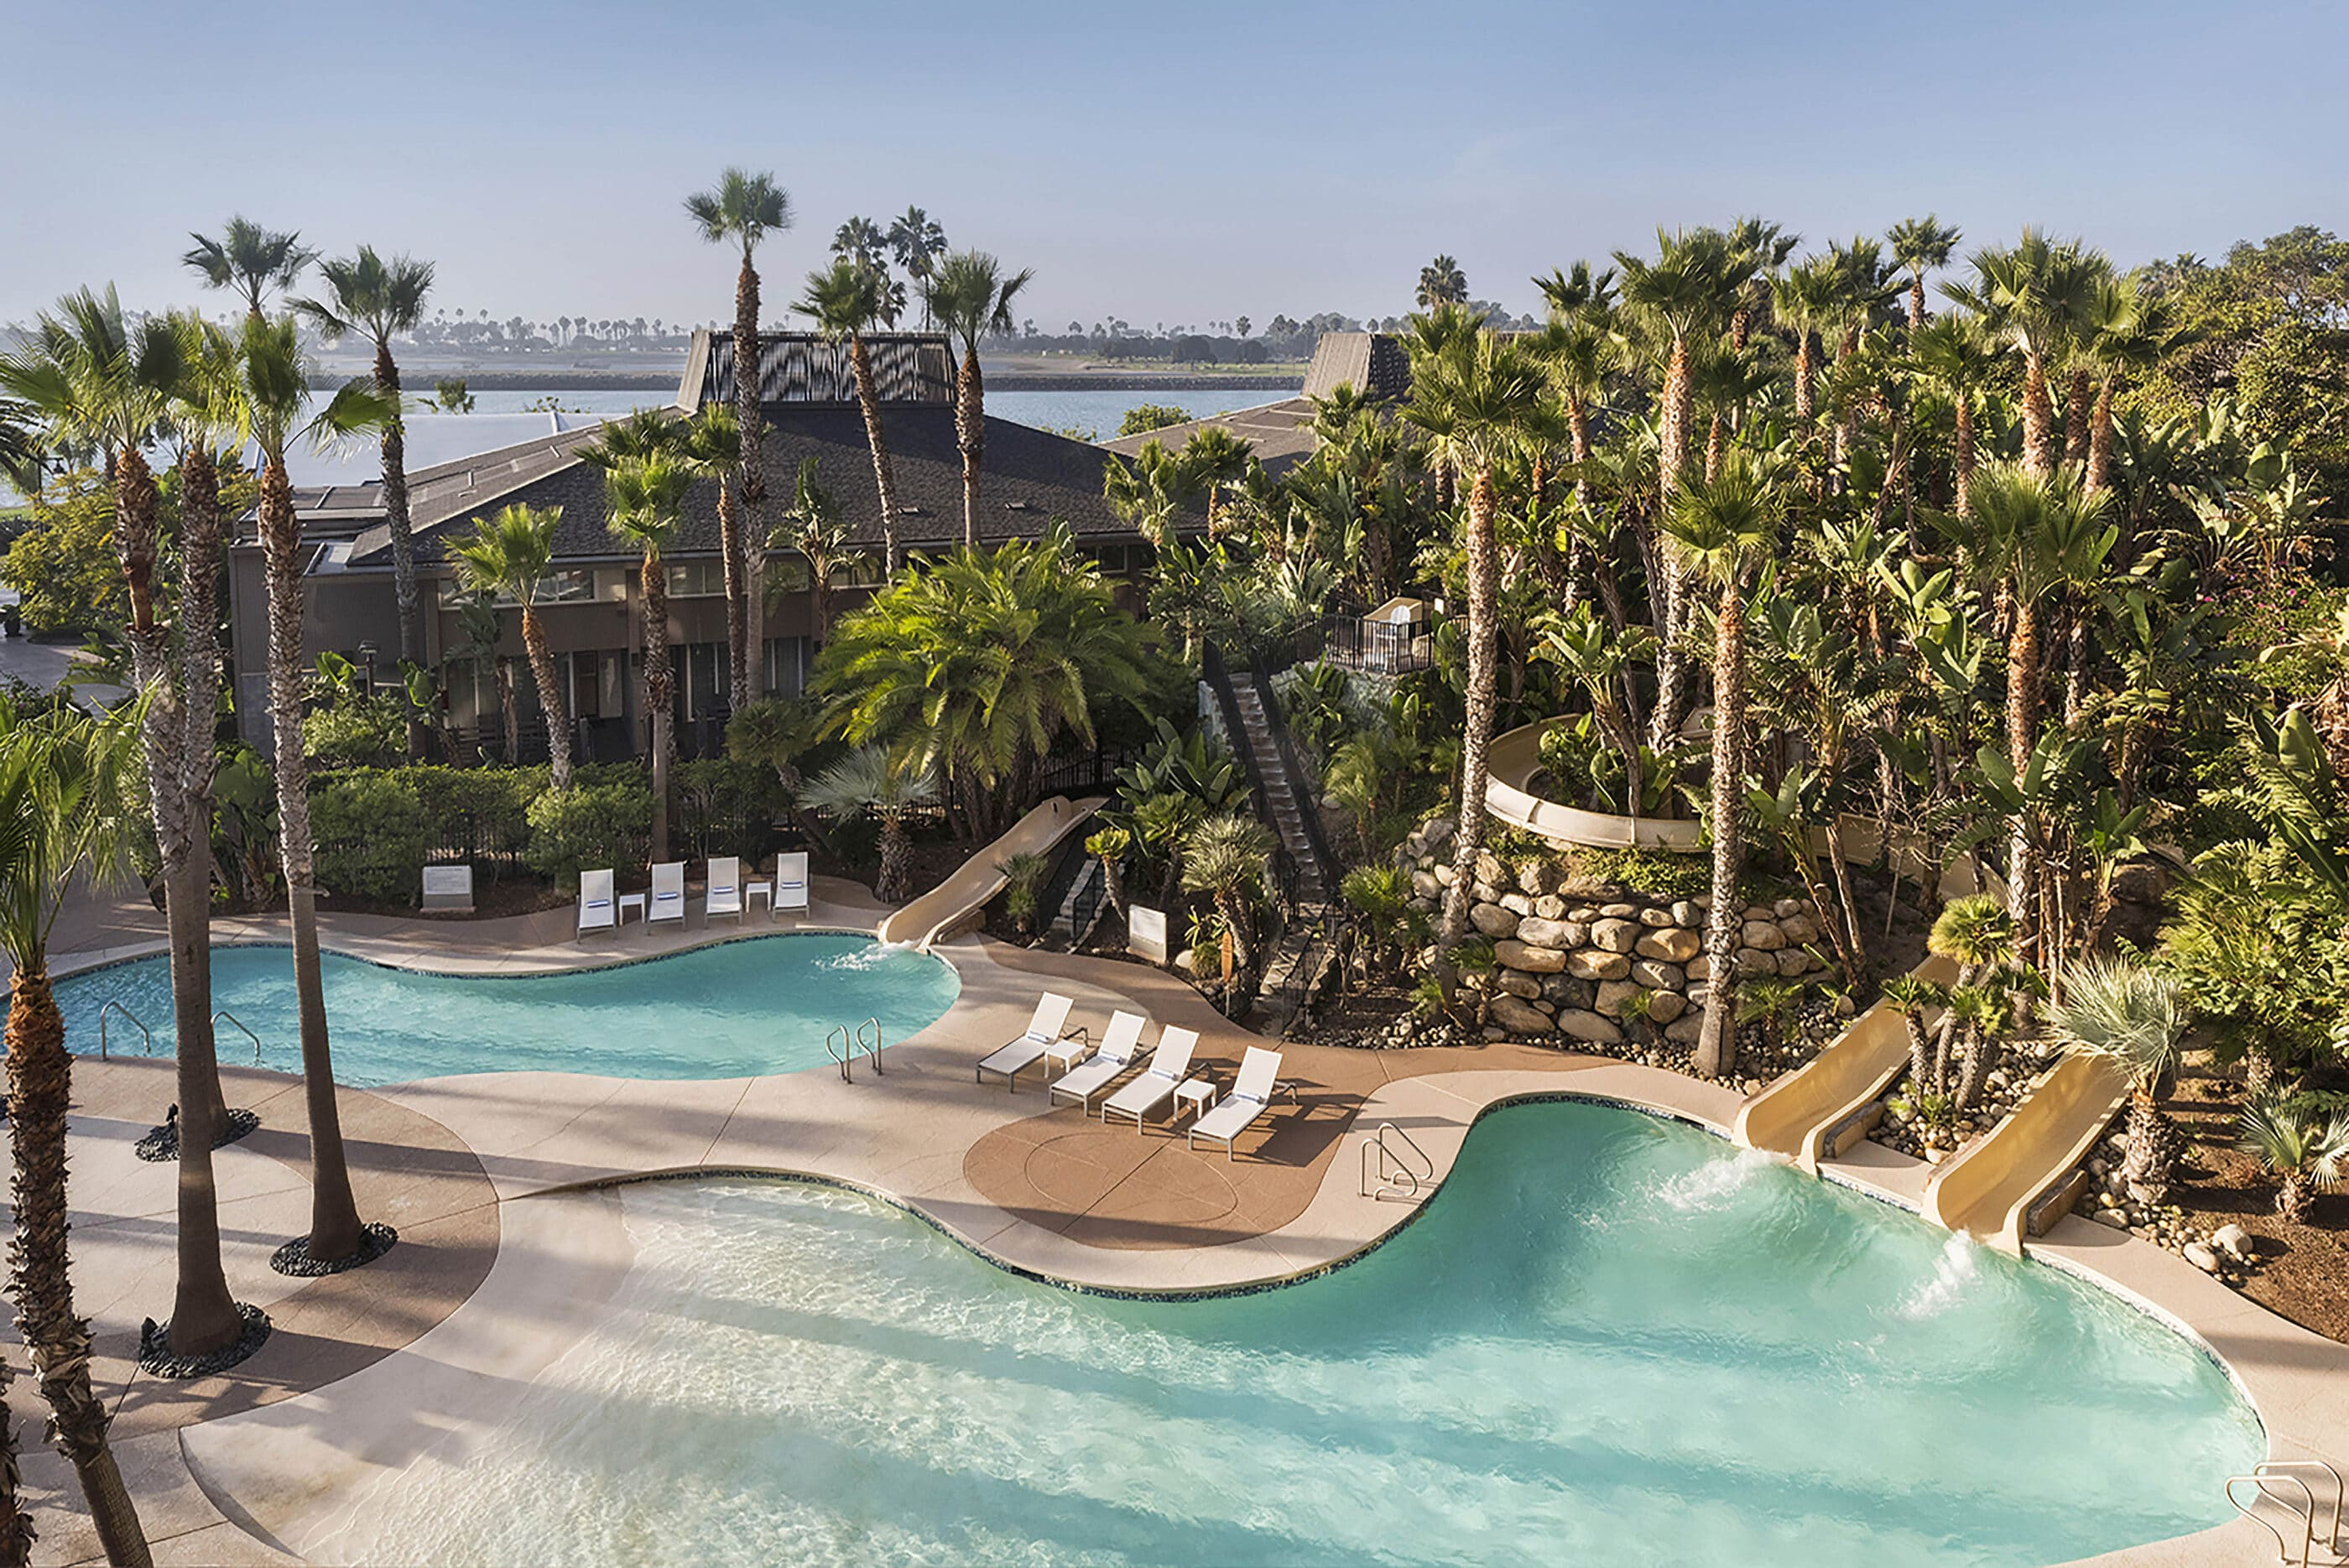 Two of the three pools and three water slides at Hyatt Regency Mission Bay Spa and Marina, a top San Diego resort.